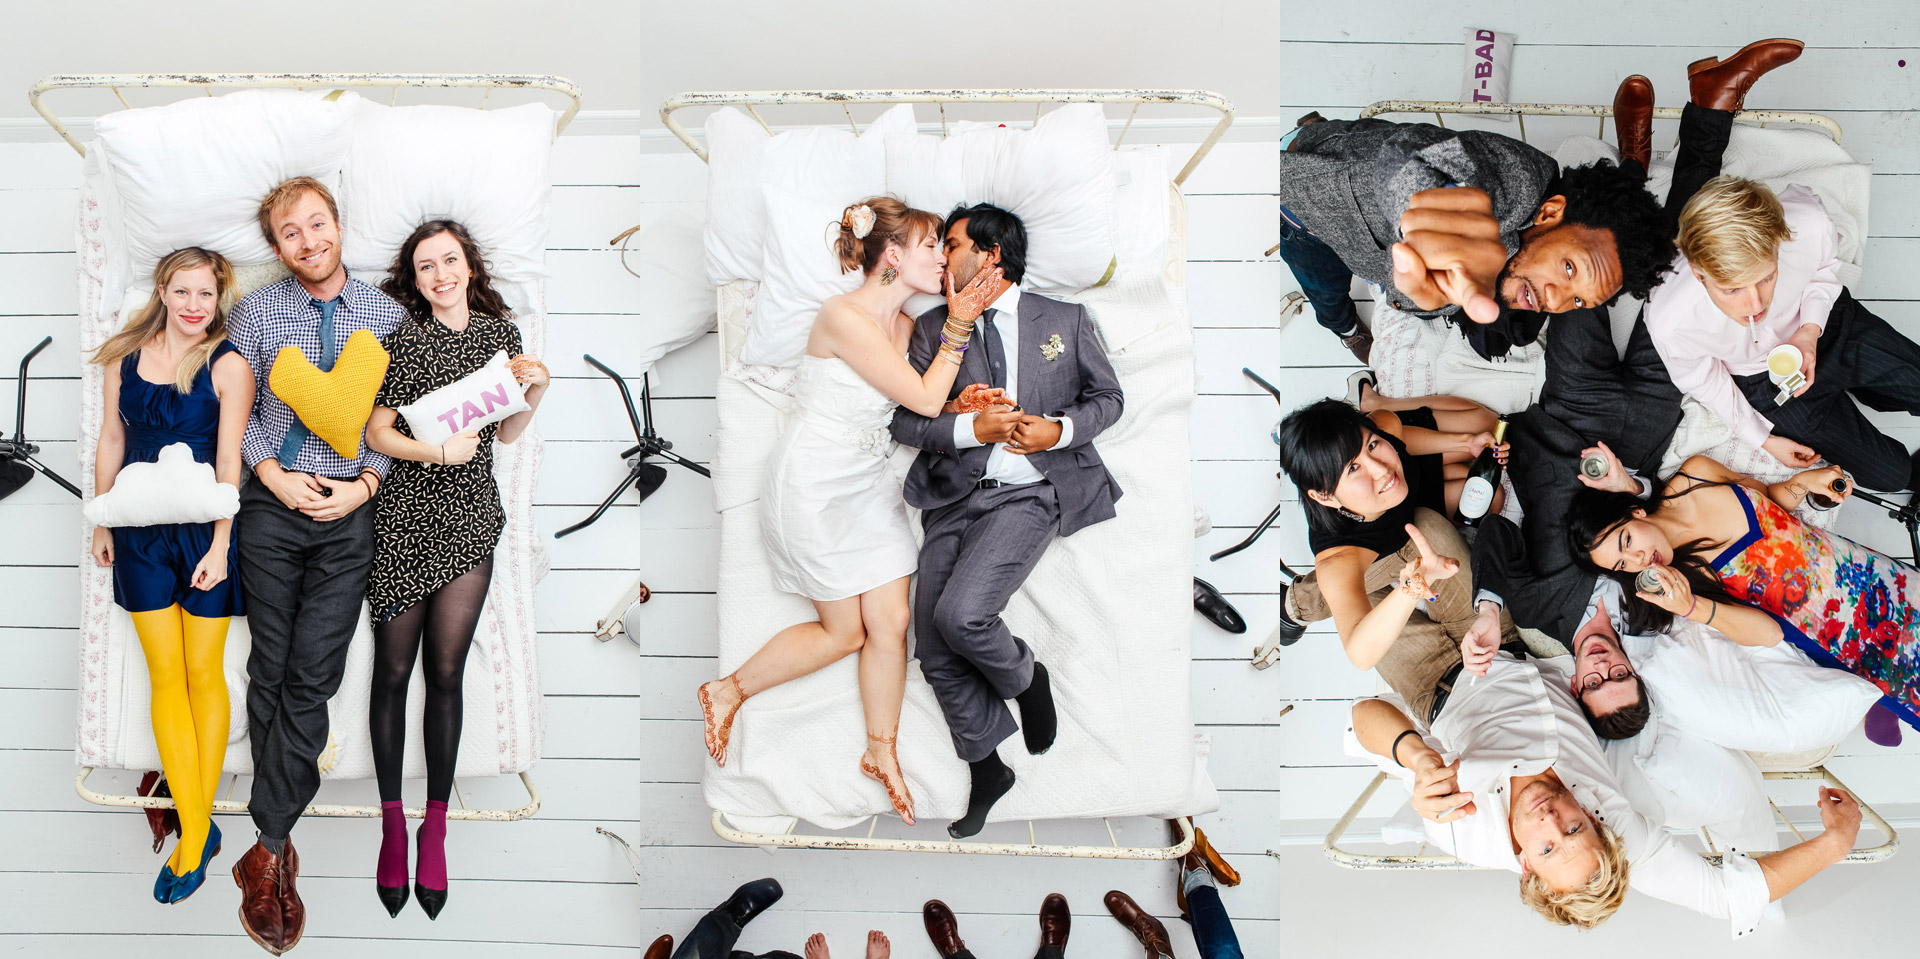 CUSTOM AERIAL PHOTO BOOTHS